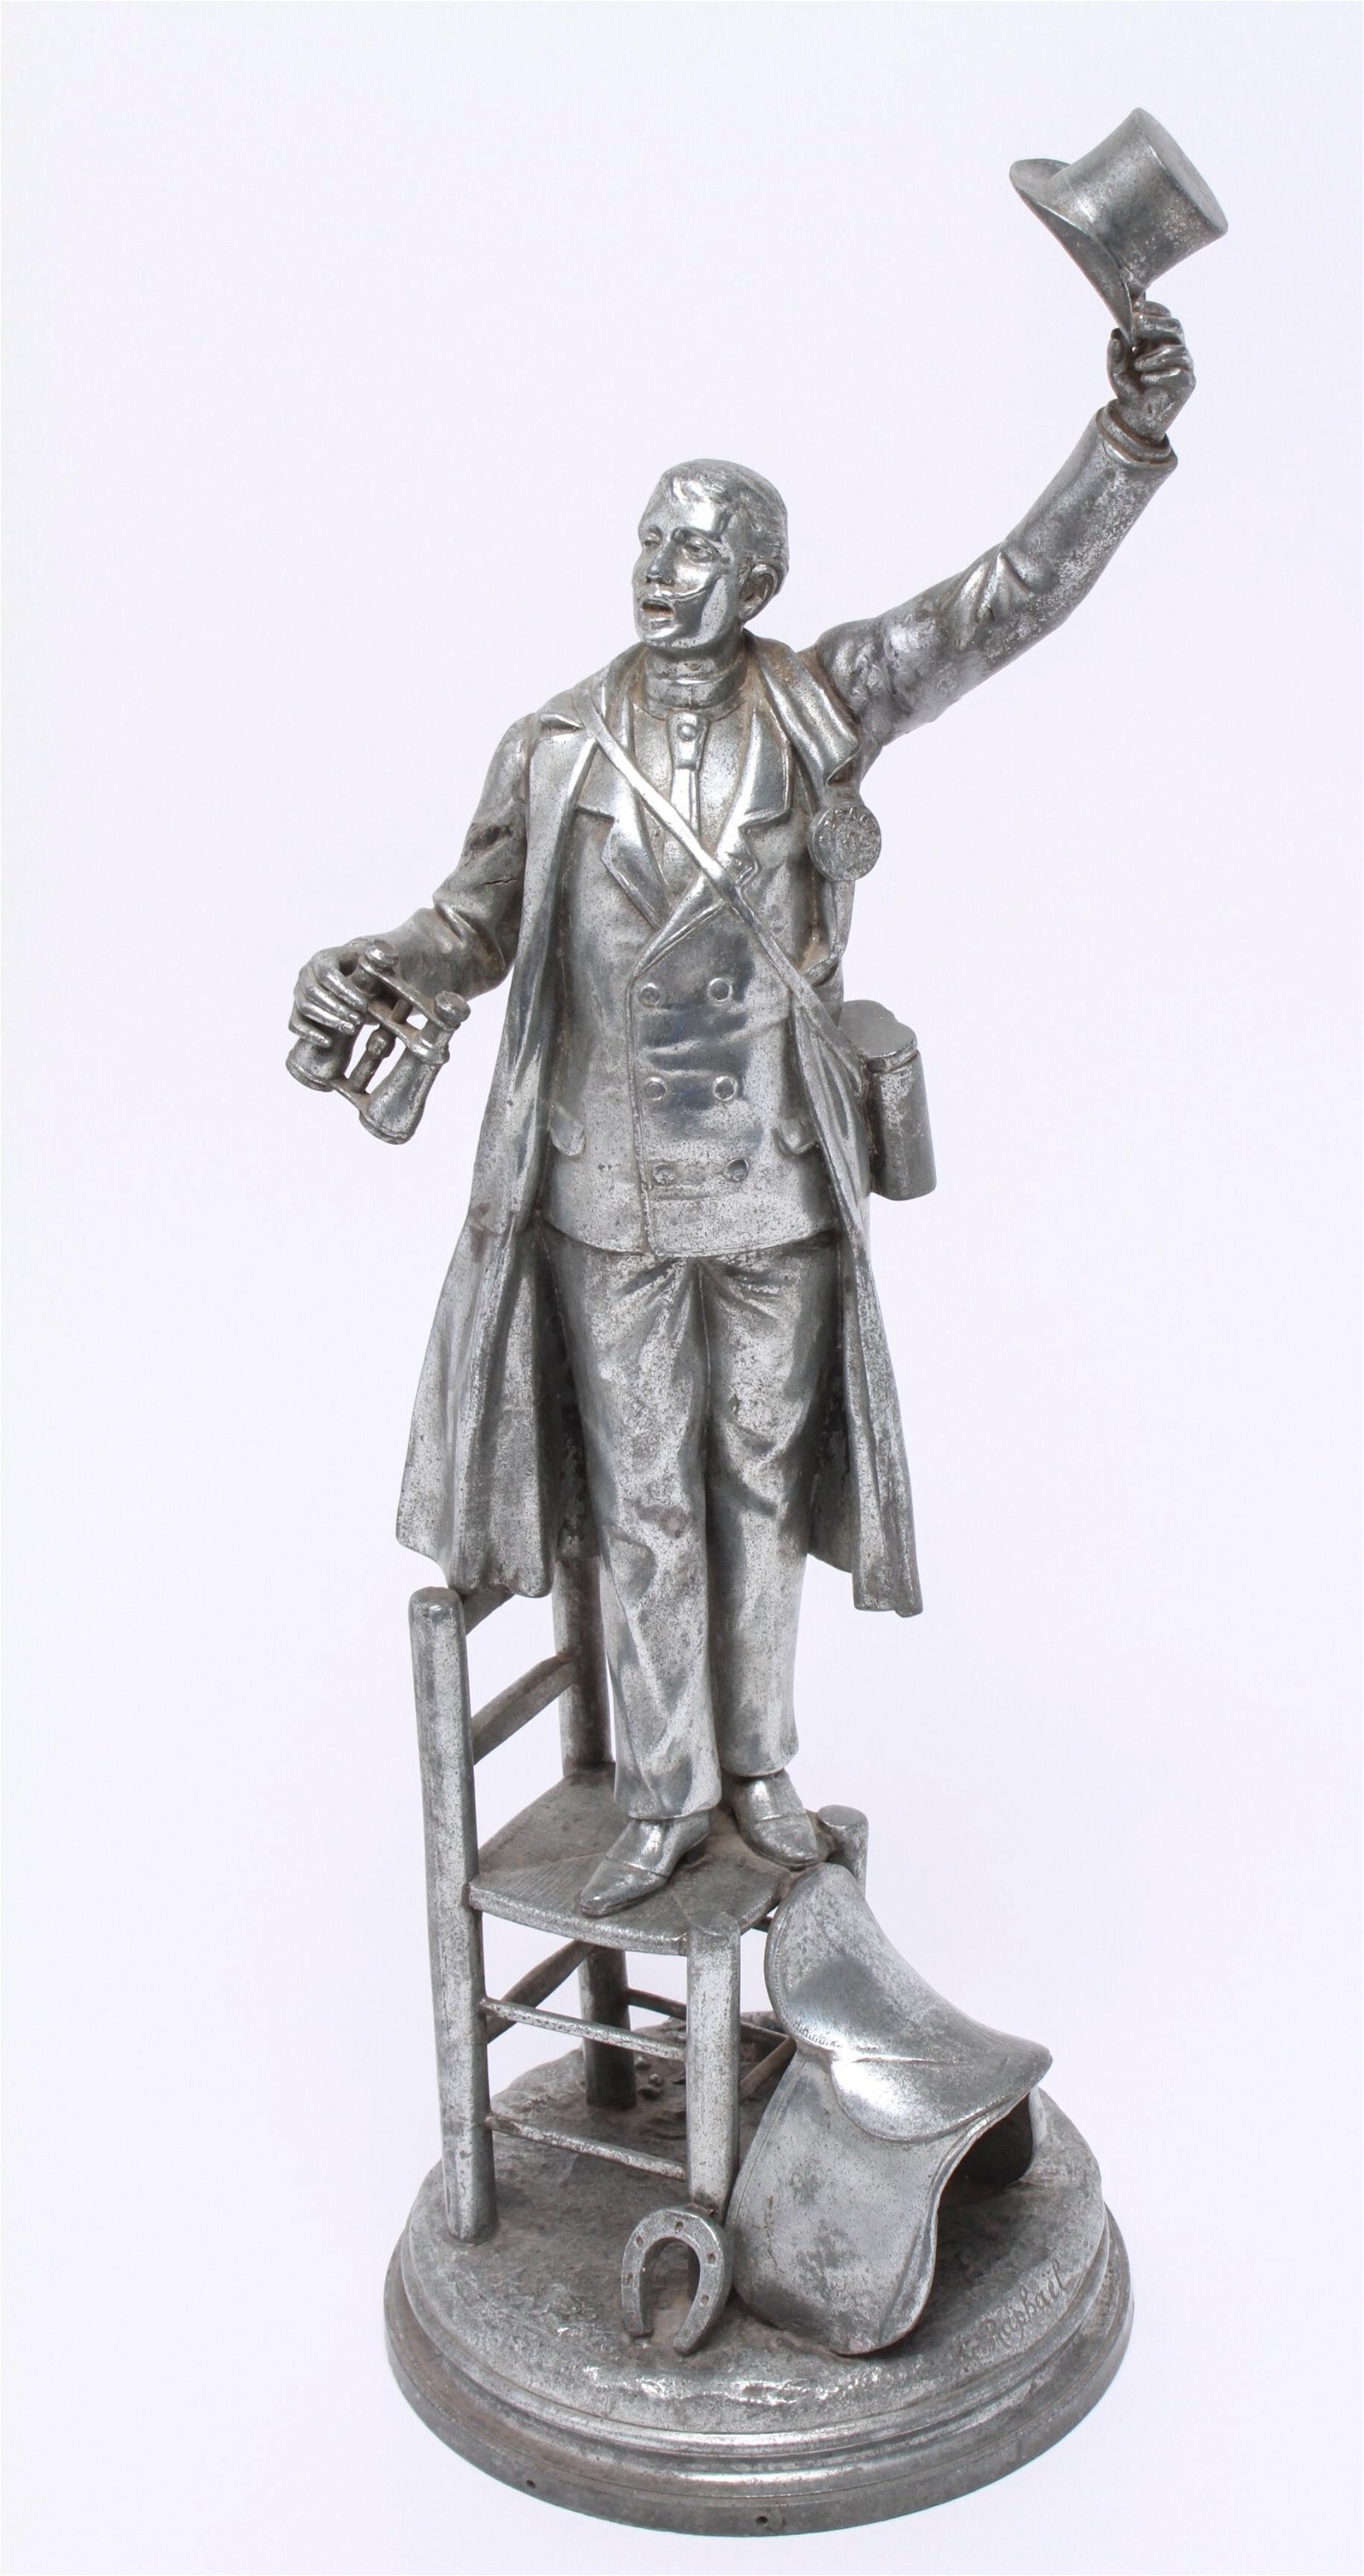 L. Raphael Cast Aluminum Sculpture of Gentleman